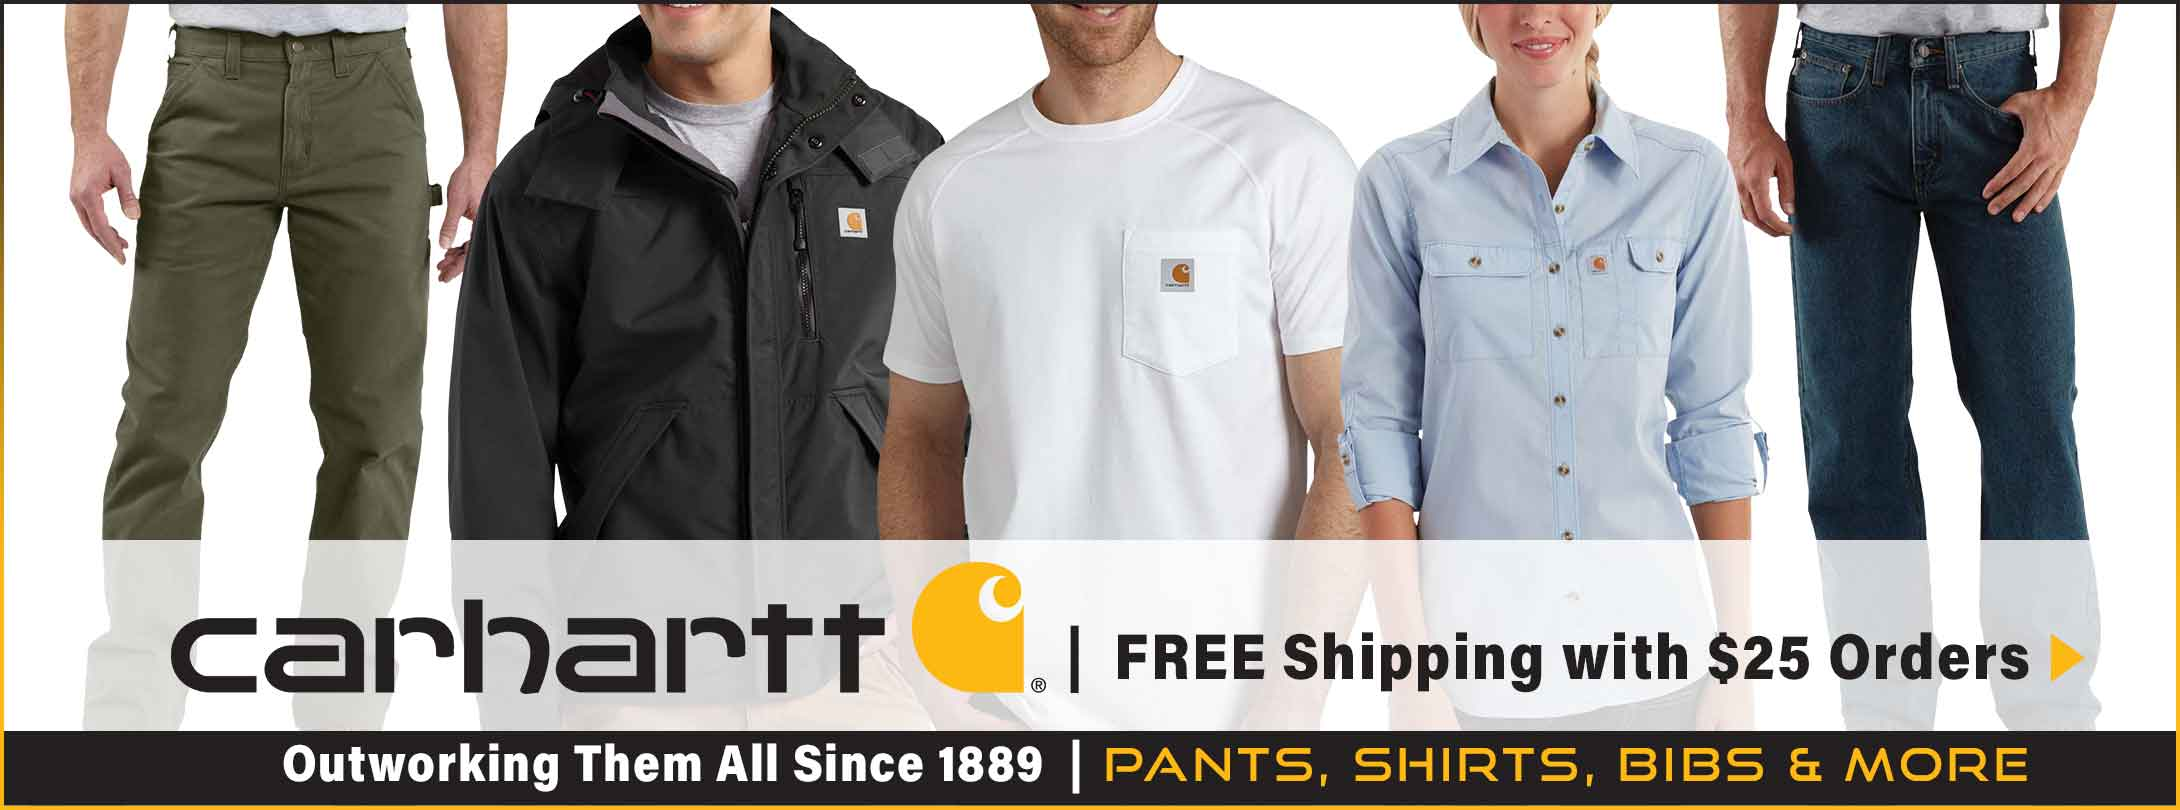 FREE Shipping with $25 Orders on Carhartt